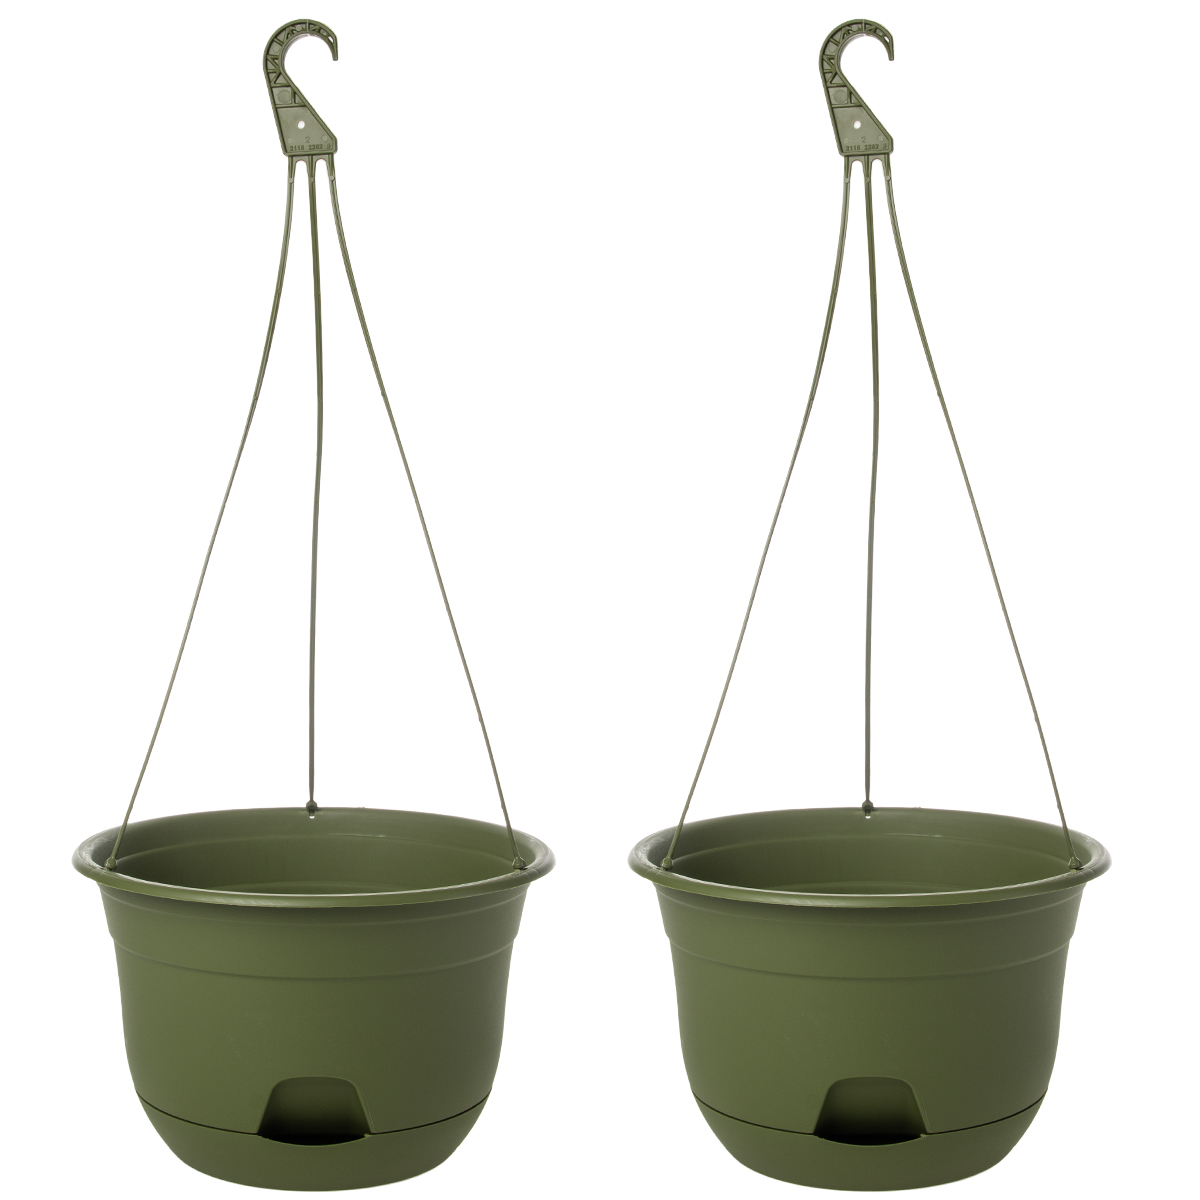 Self Watering Outdoor Planters 2pk Suncast 12 Self Watering Hanging Planter Indoor